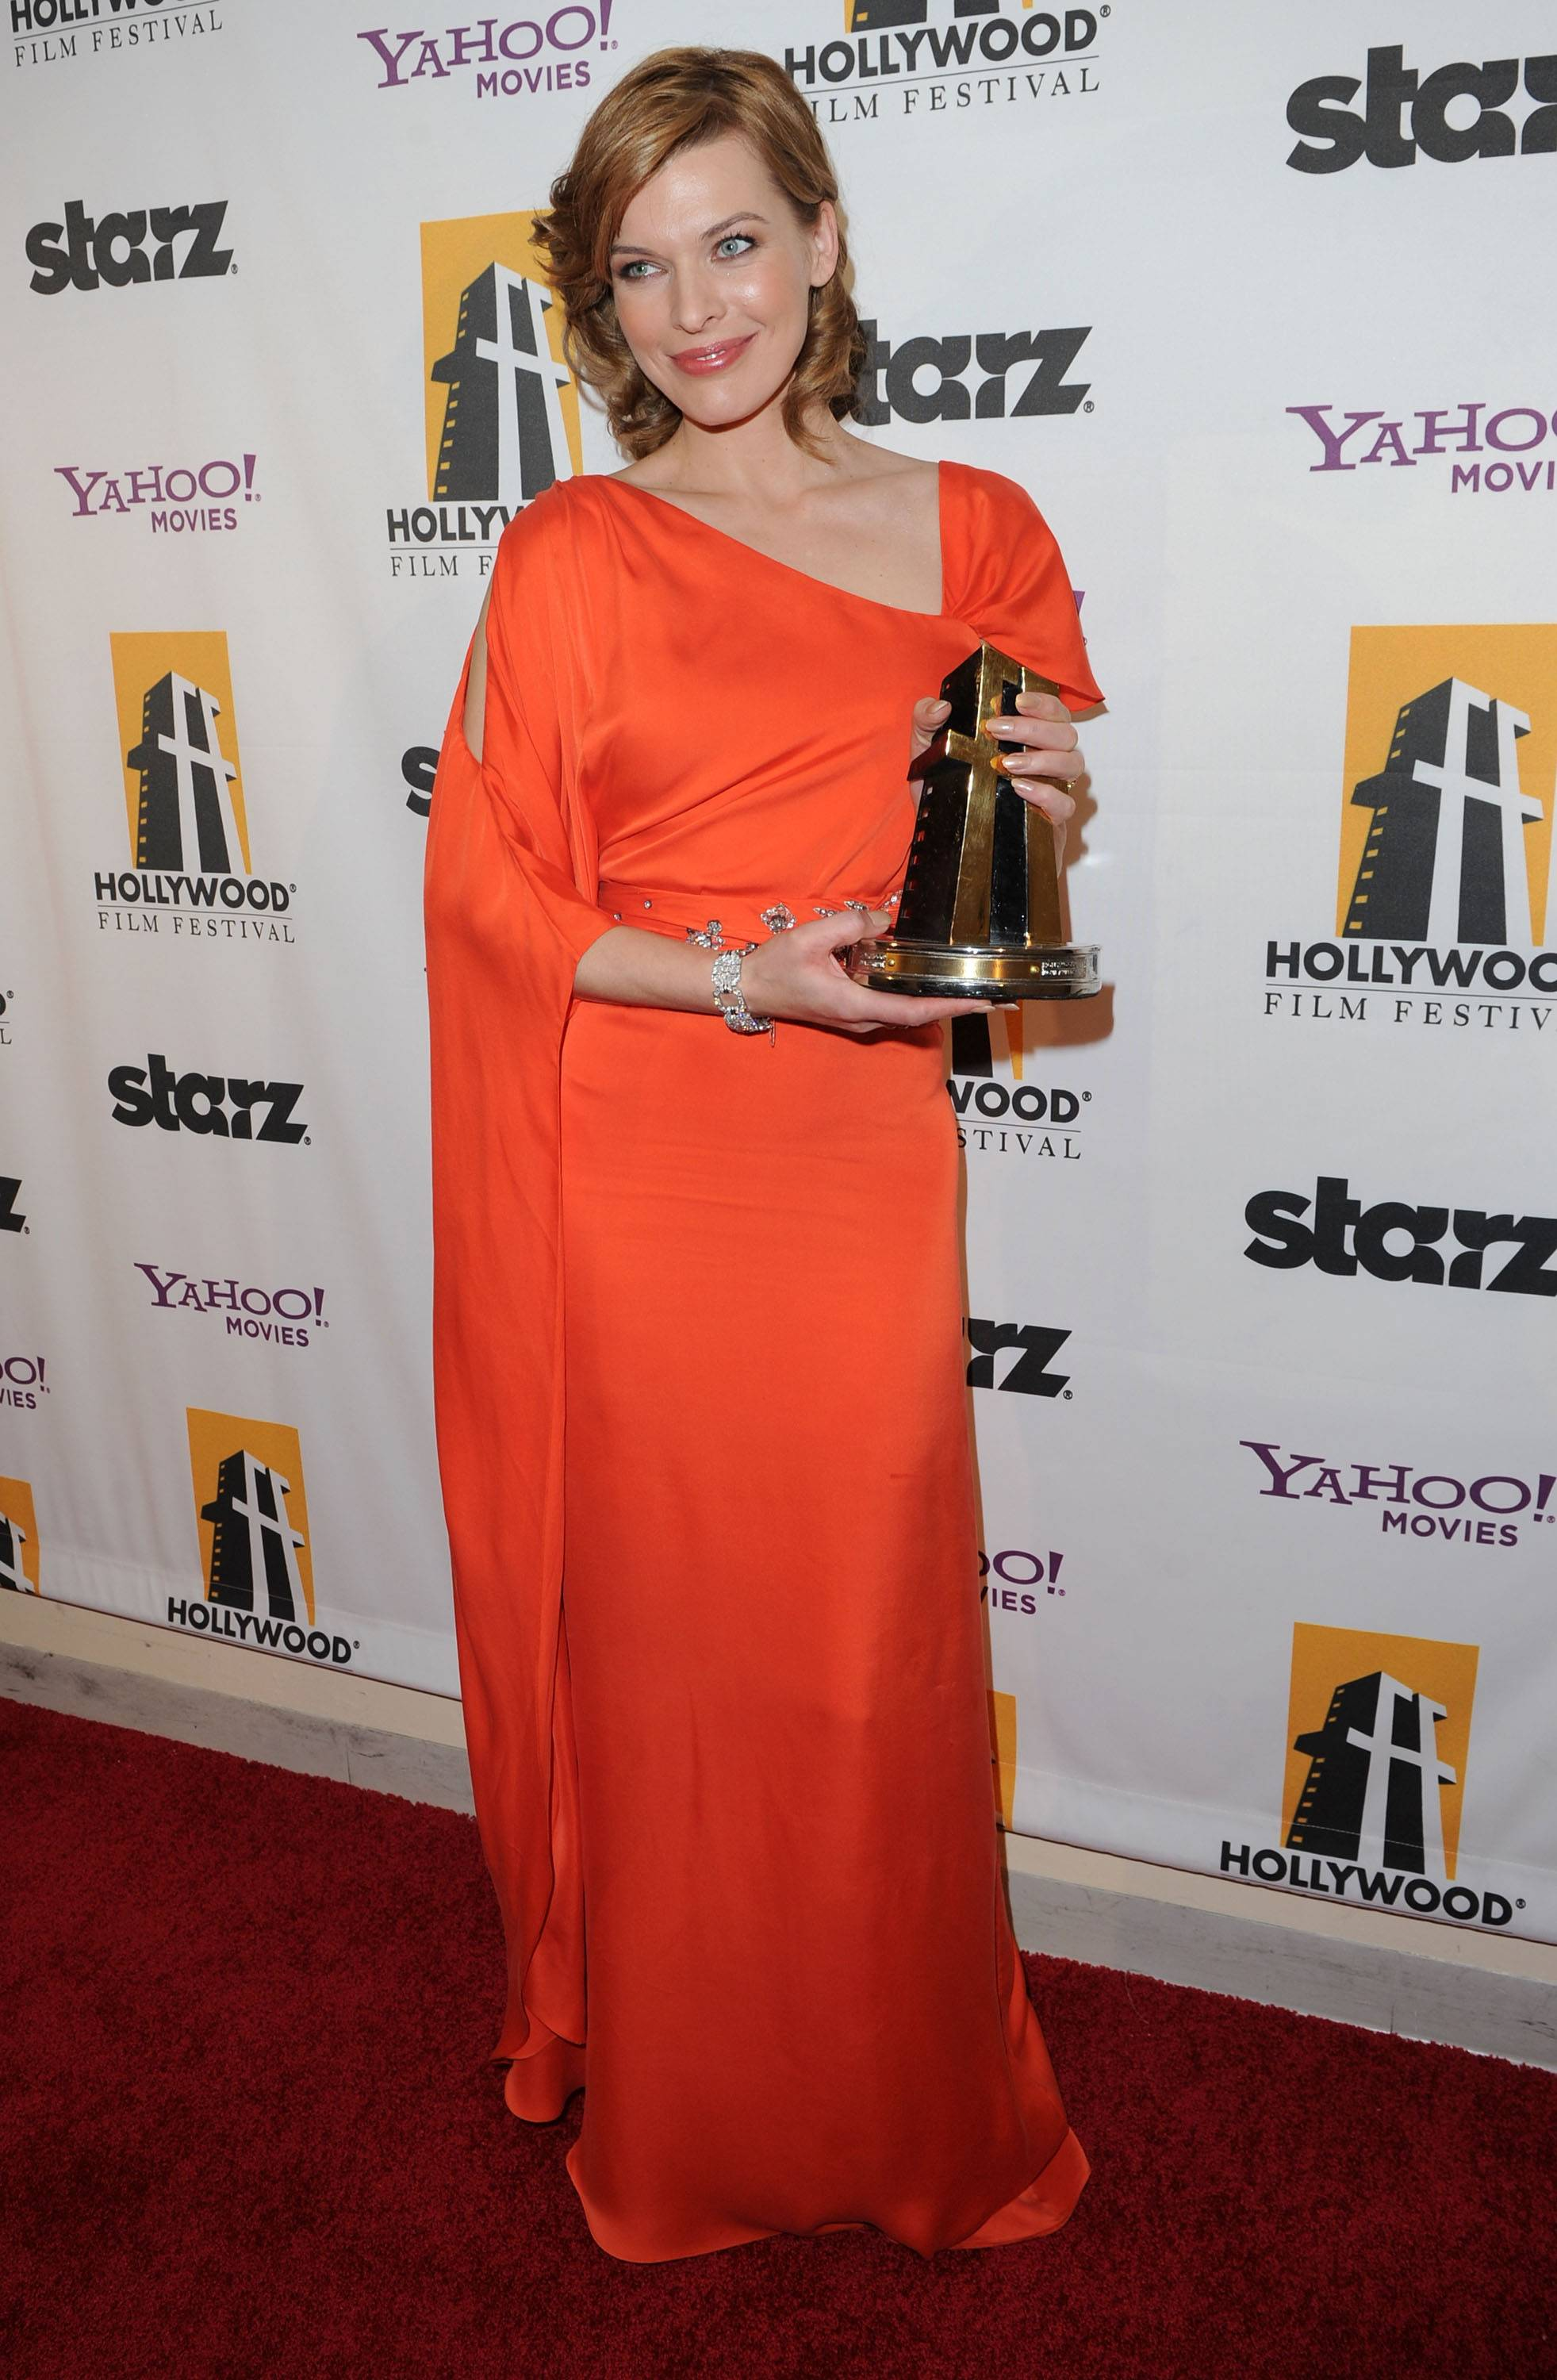 Actress Milla Jovovich poses with the Hollywood Spotlight Award during the 14th annual Hollywood Awards Gala at The Beverly Hilton Hotel on October 25, 2010 in Beverly Hills, California.